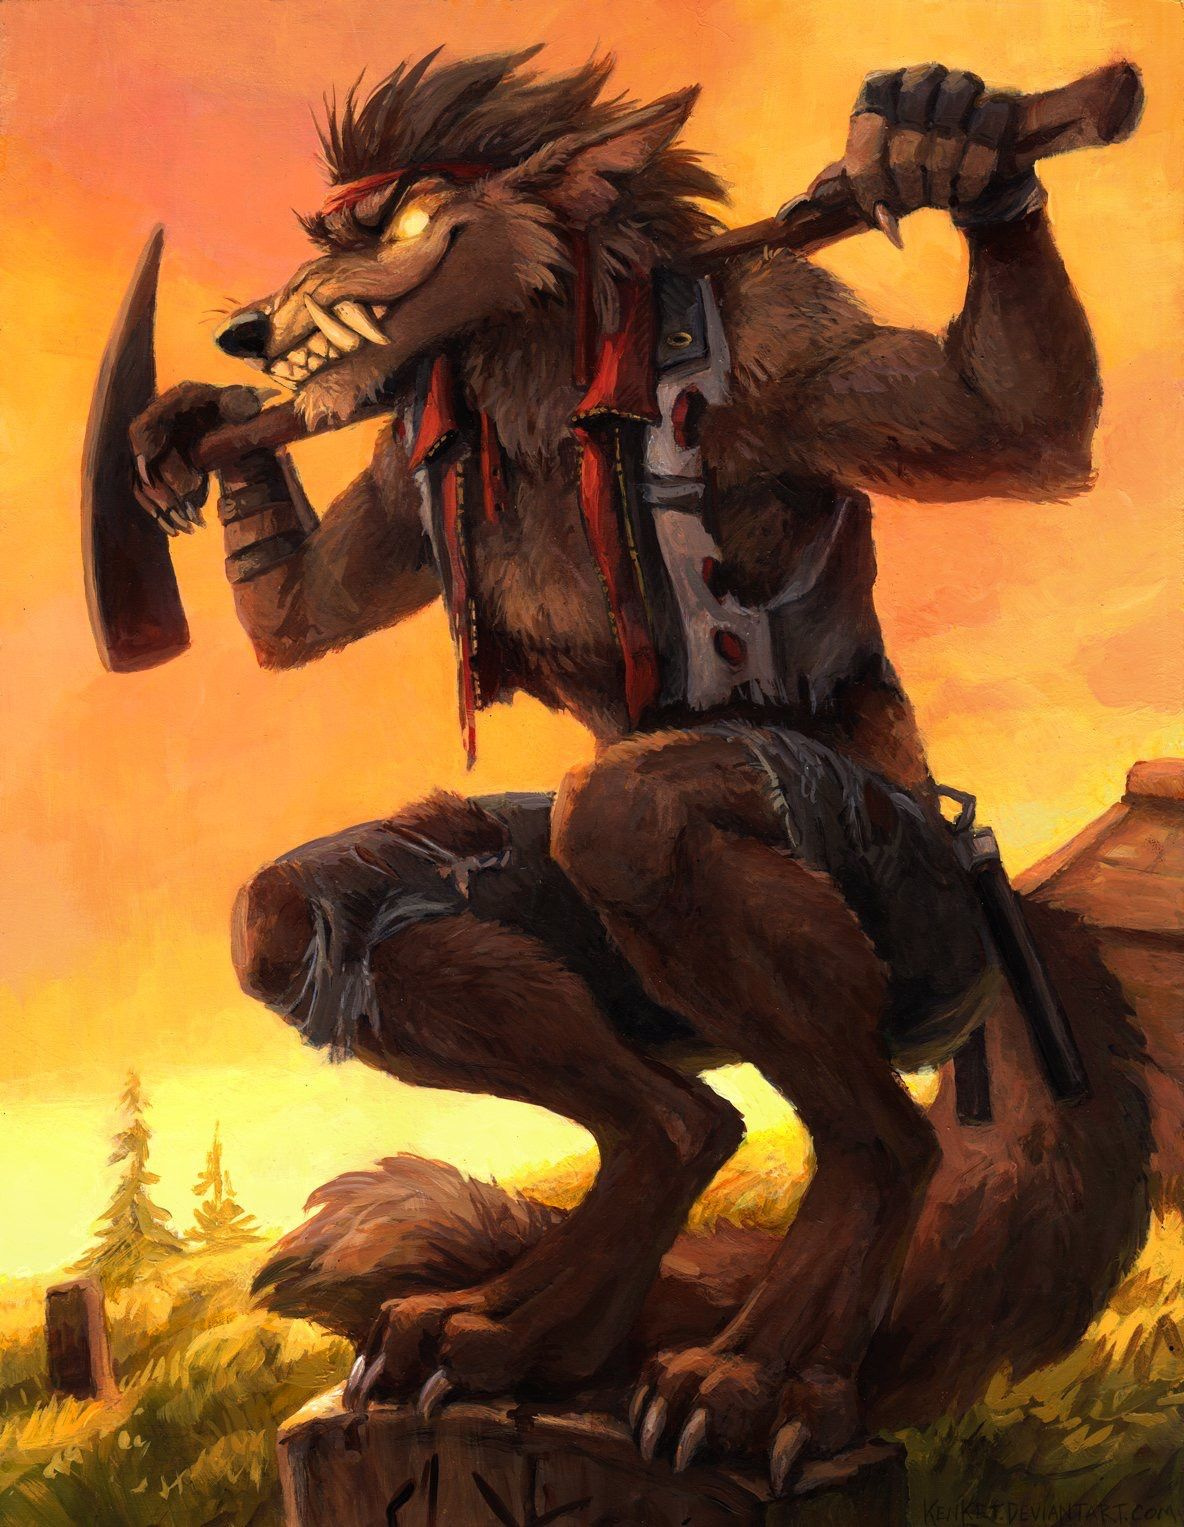 Fortnite  Dire skin wallpaper fortnite wallpaper direwolf 1184x1527